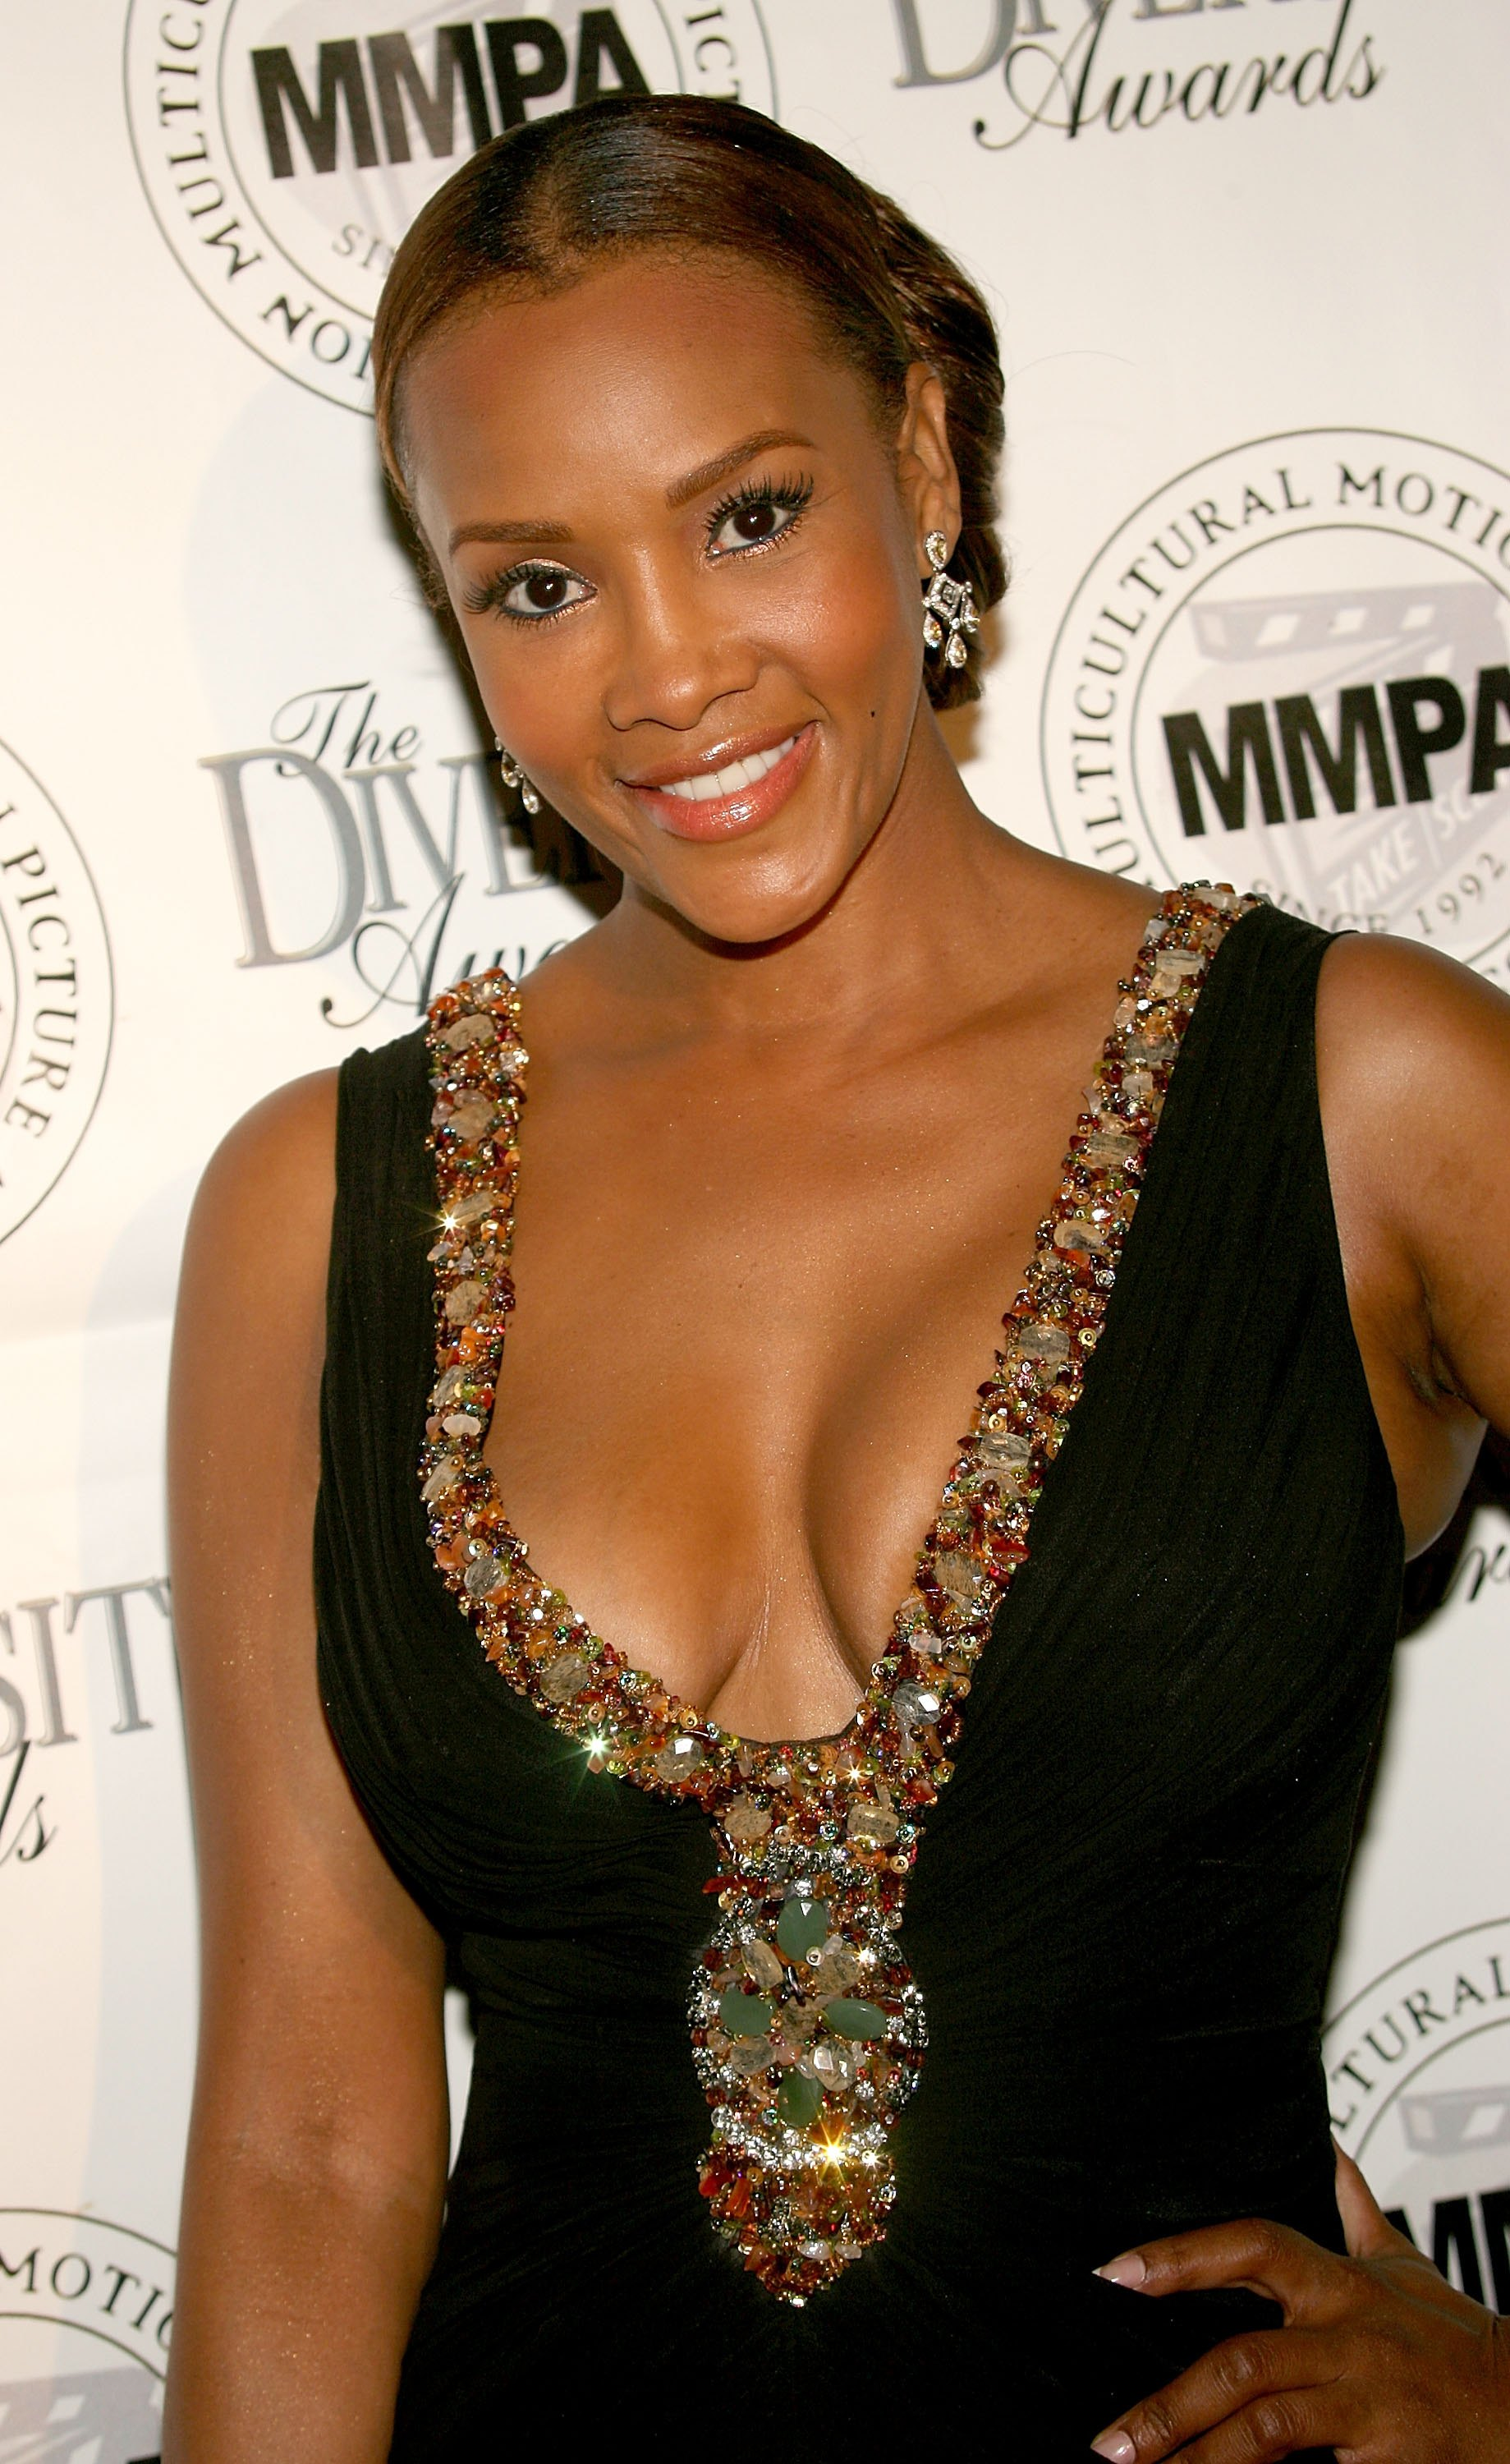 Hot Vivica A. Fox nudes (56 photo), Topless, Leaked, Feet, braless 2018